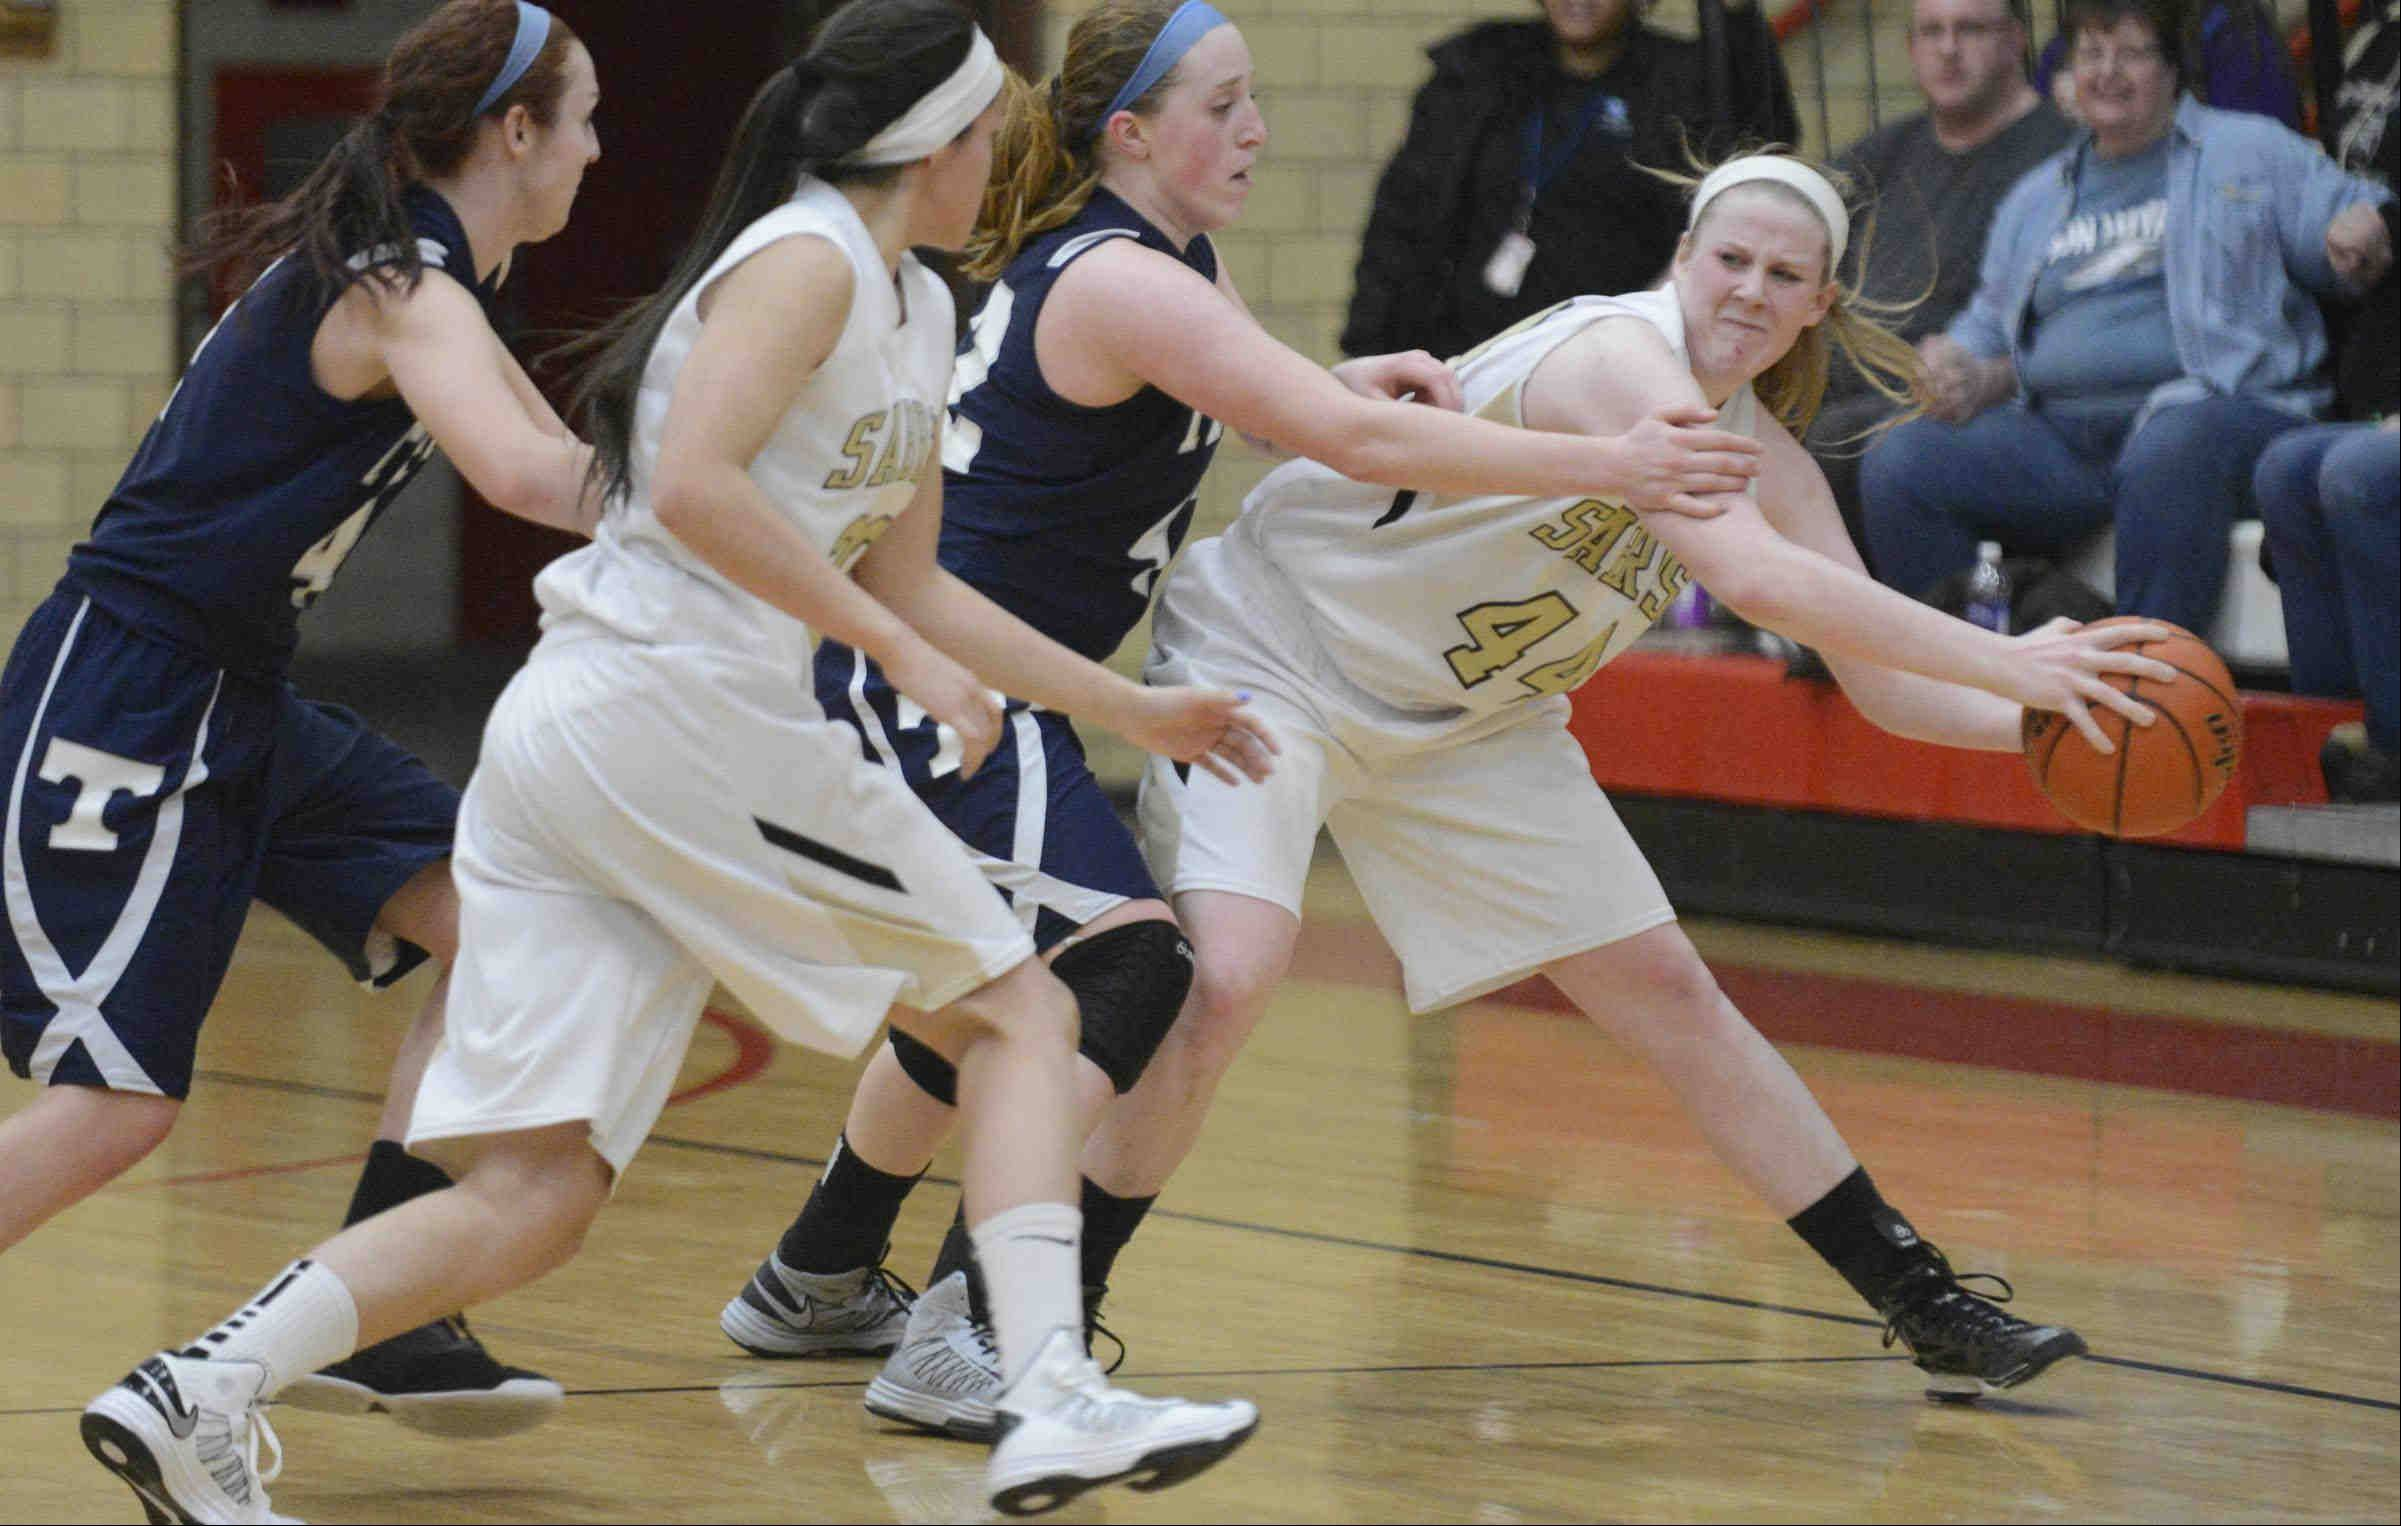 Streamwood's Hannah McGlone keeps the ball away from Cary-Grove's Olivia Jakubicek with seconds to play Monday in the Class 4A sectional game in Rockford.